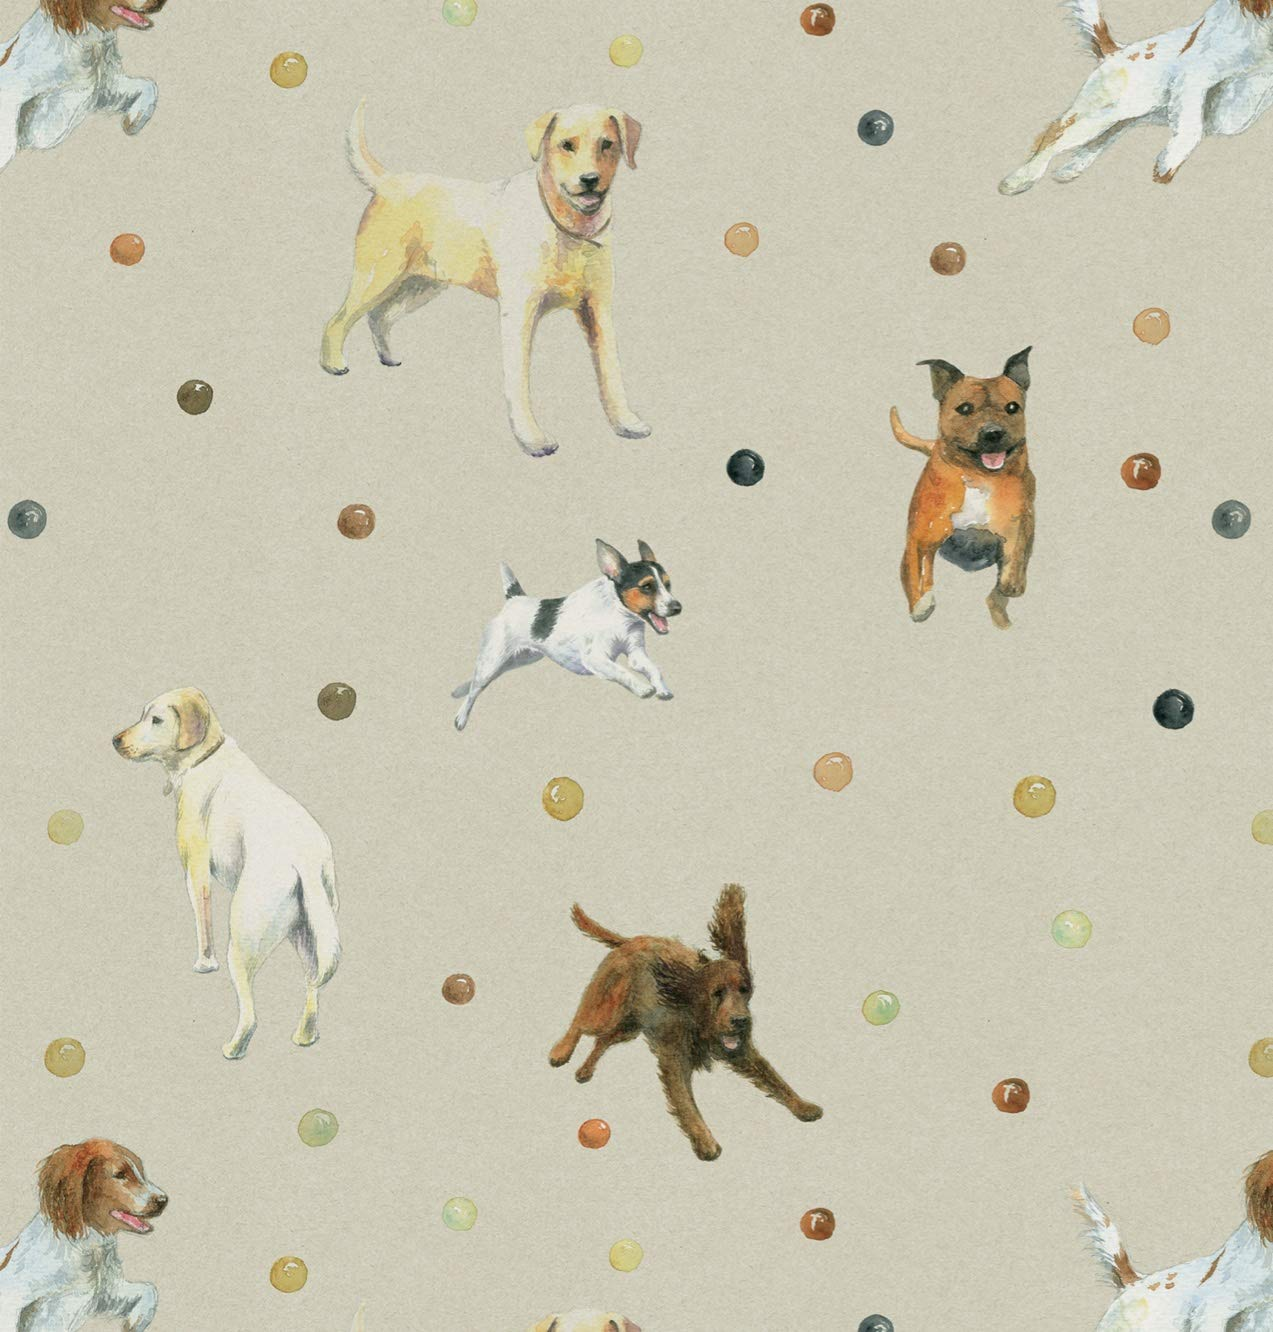 Dog Gift Wrapping Paper Jack Russell Golden Retriever Labrador Springer Spaniel And Staffordshire Bull Terrier Illustrations Amazon Co Uk Office Products